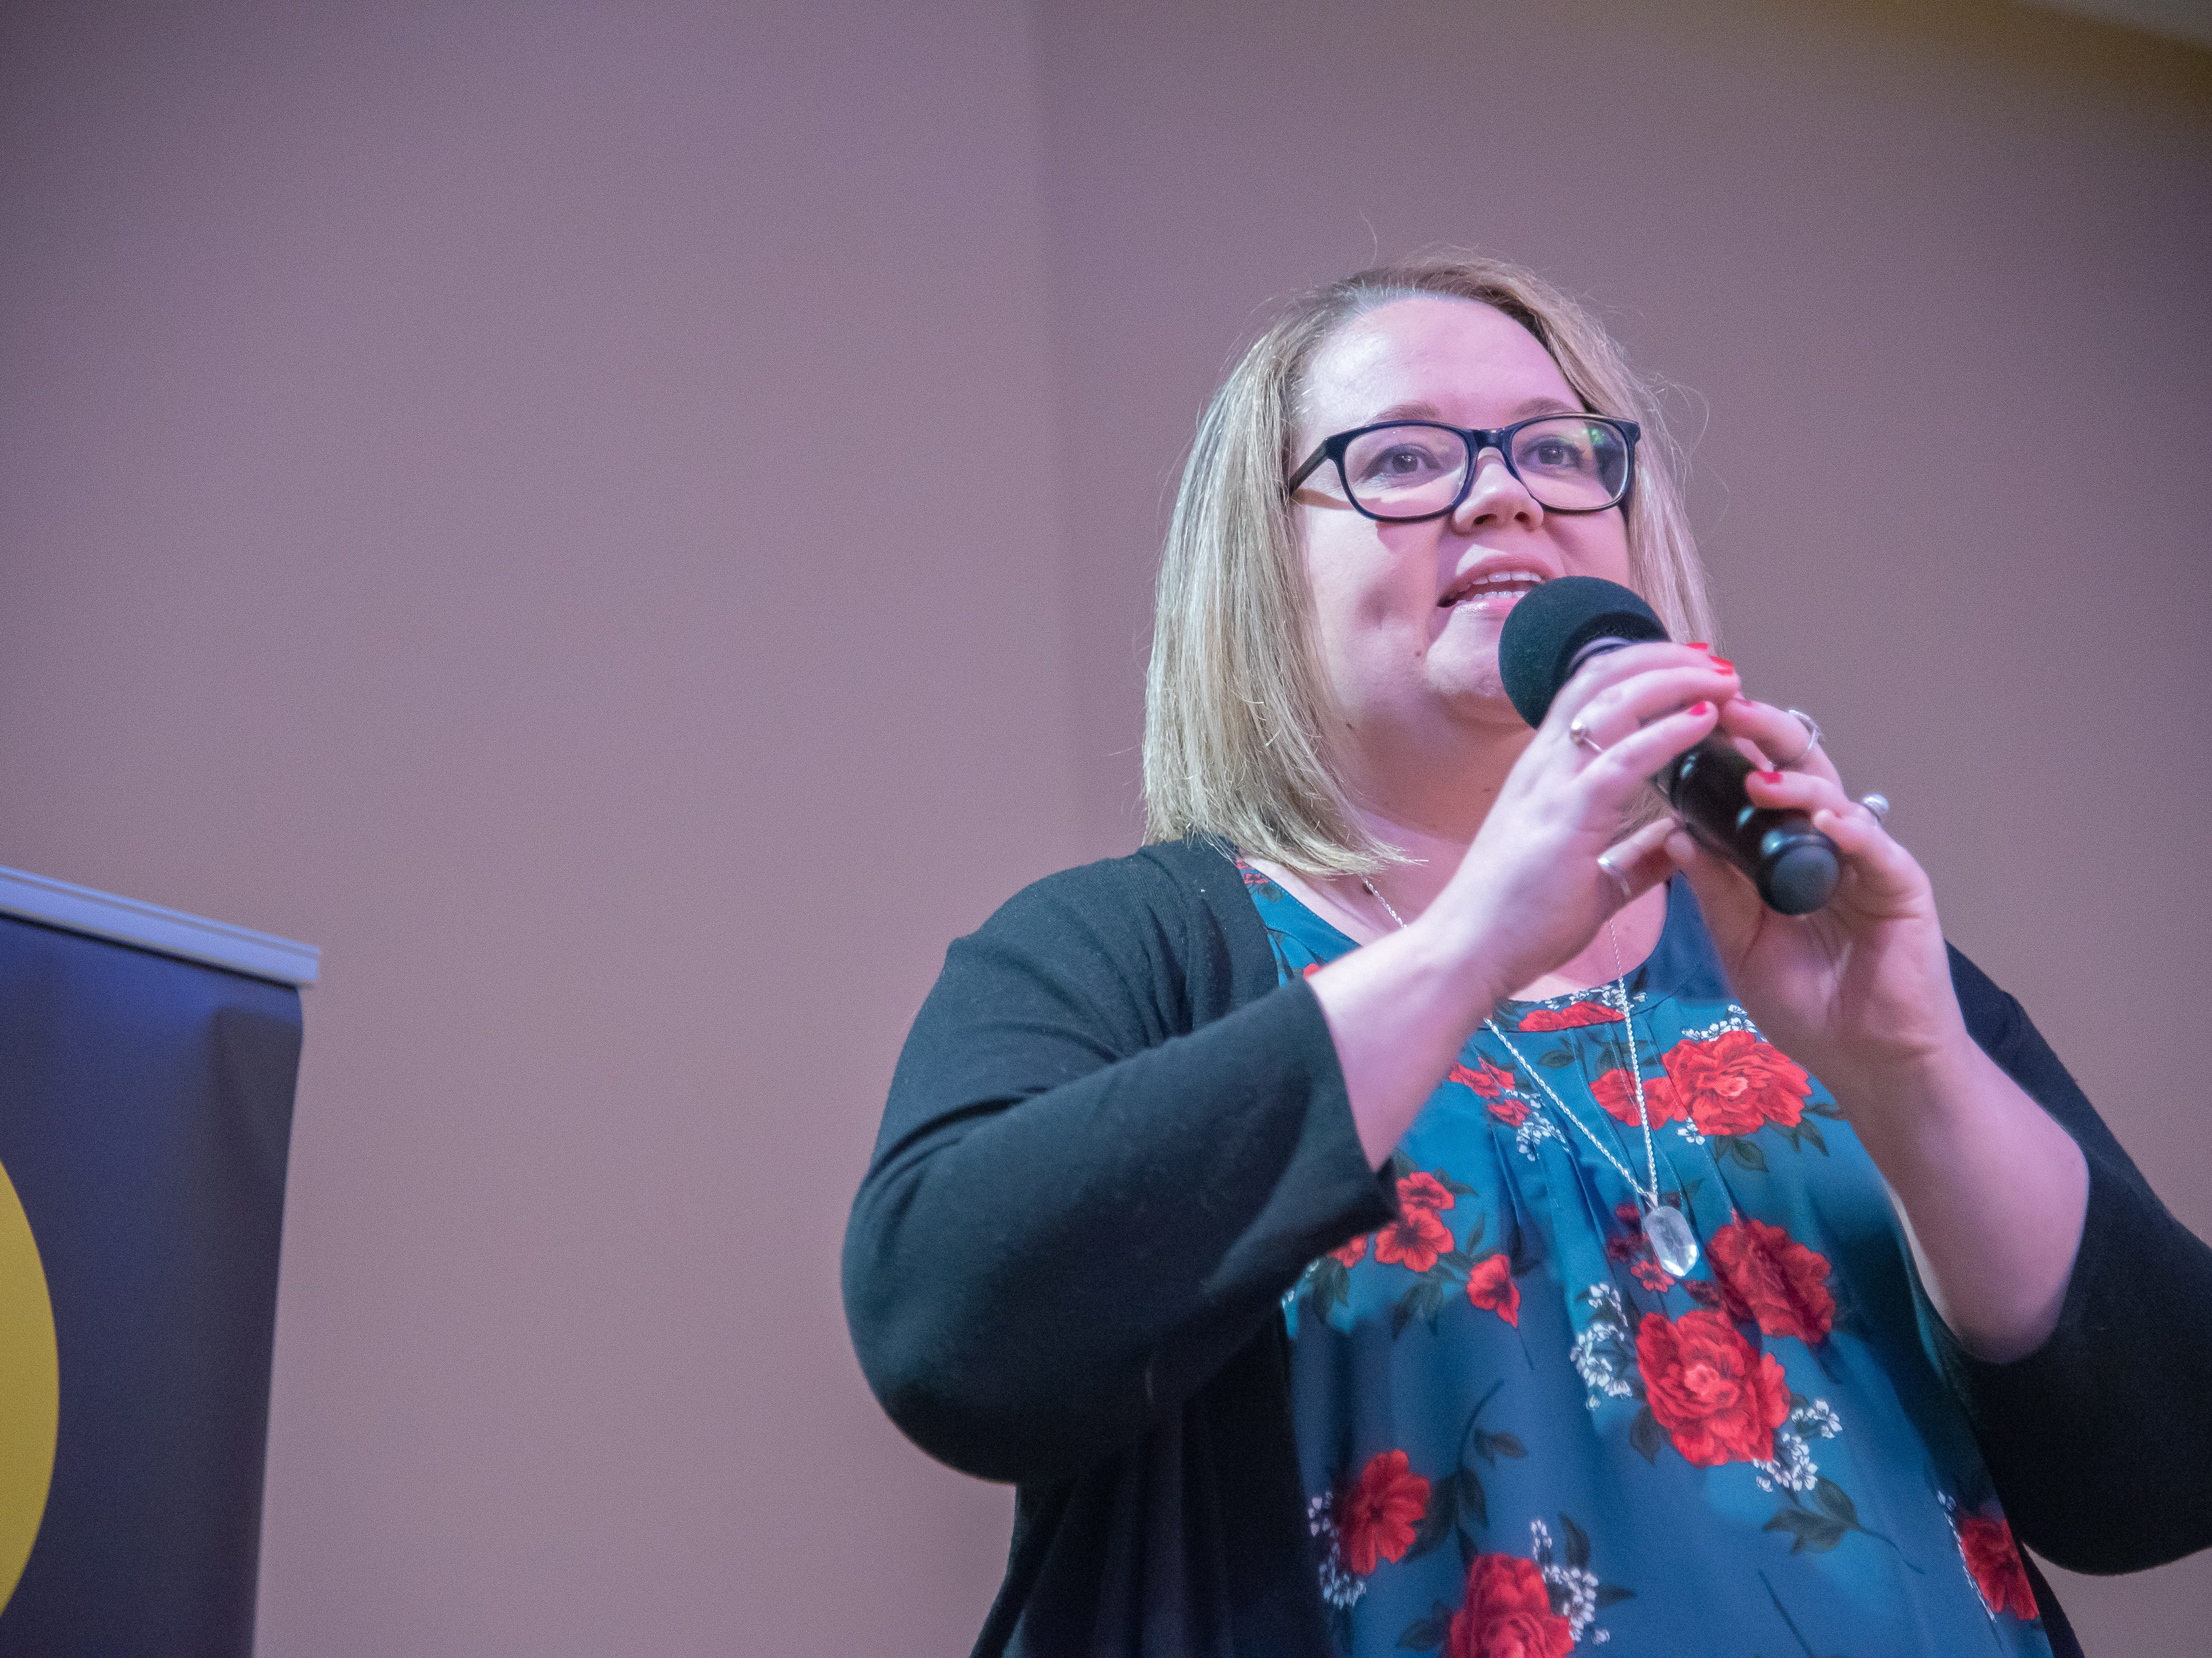 Storyteller Ali Owens tells a story about overcoming obstacles during the Coloradoan Storytellers Project at Lincoln Center on Tuesday, December 11, 2018.